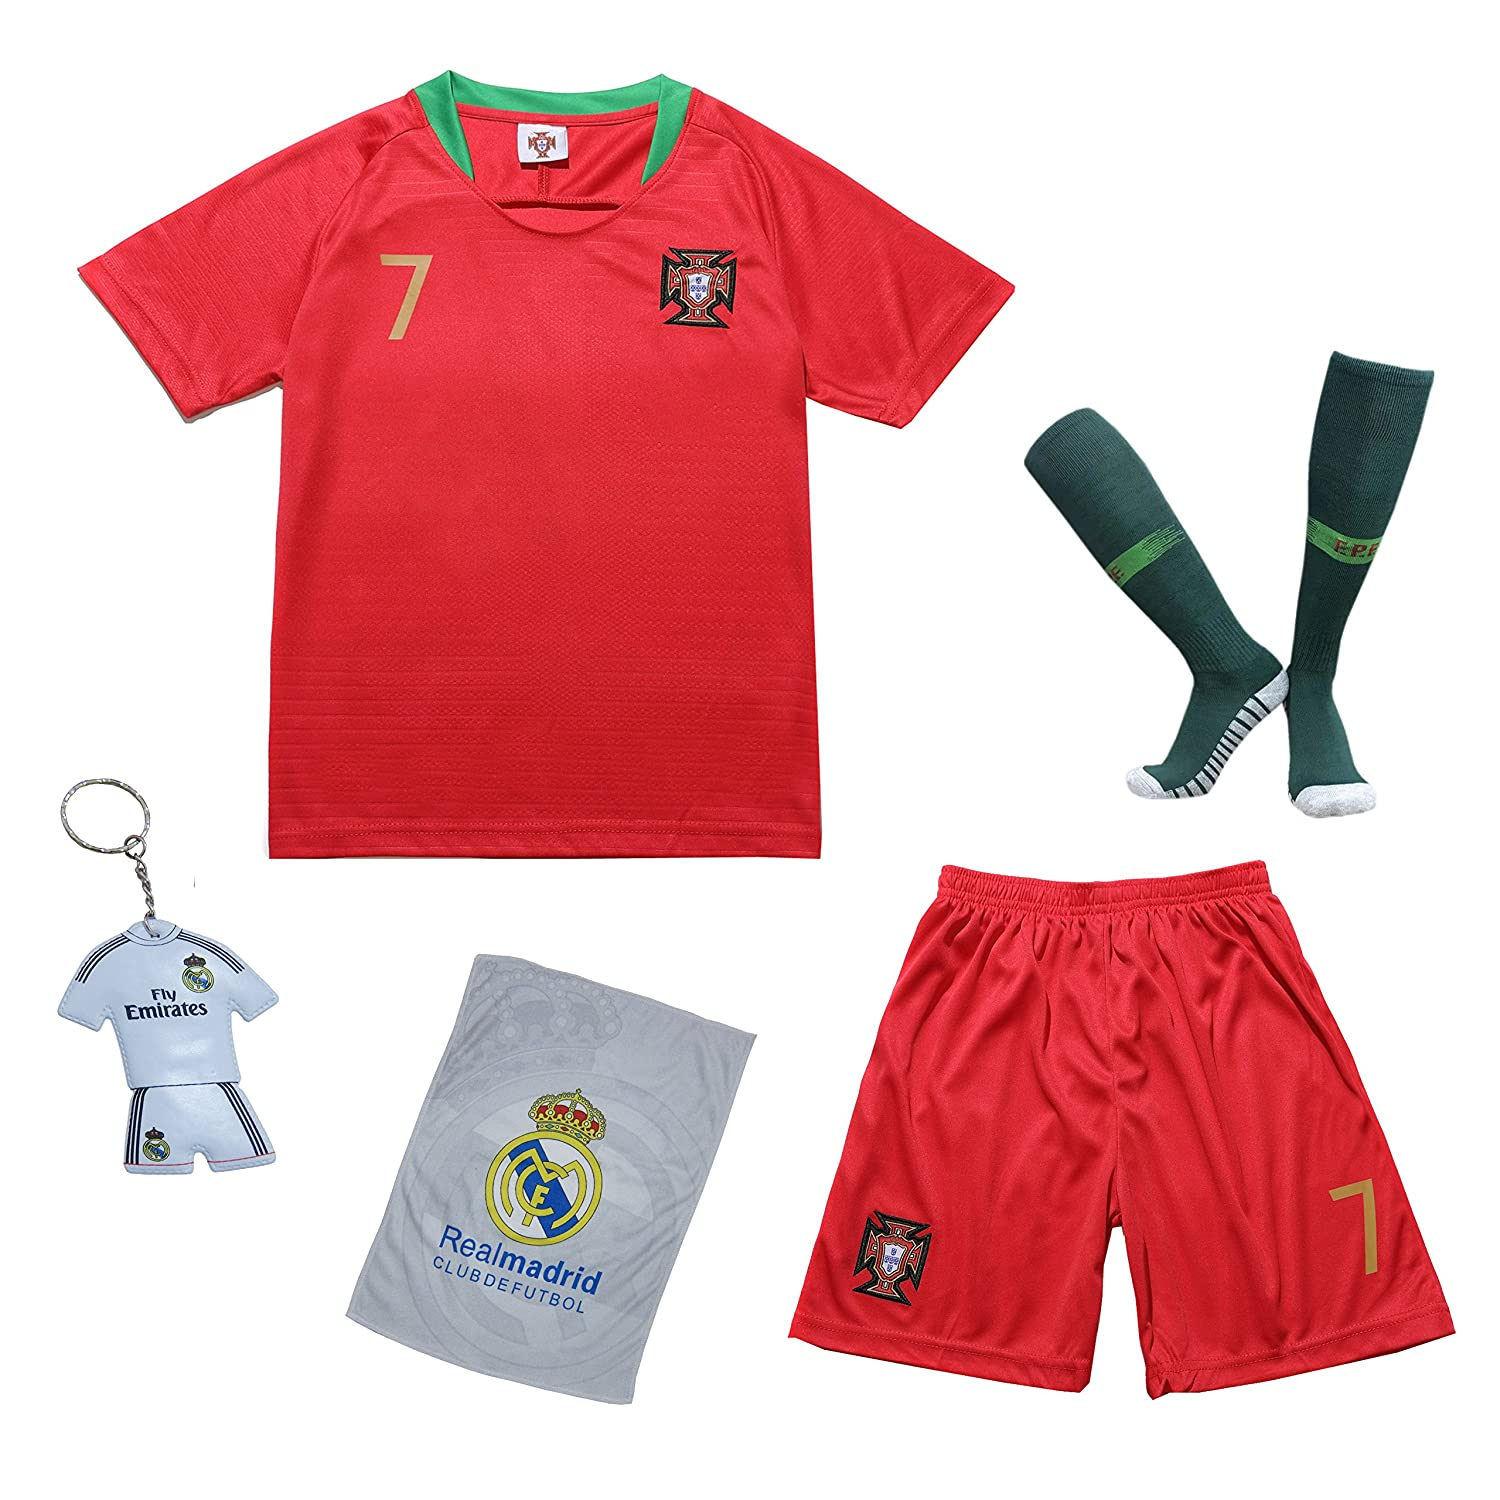 cea400e65 Amazon.com : KID BOX 2018 Portugal Cristiano Ronaldo #7 Home Red Kids Soccer  Football Jersey Gift Set Youth Sizes : Sports & Outdoors